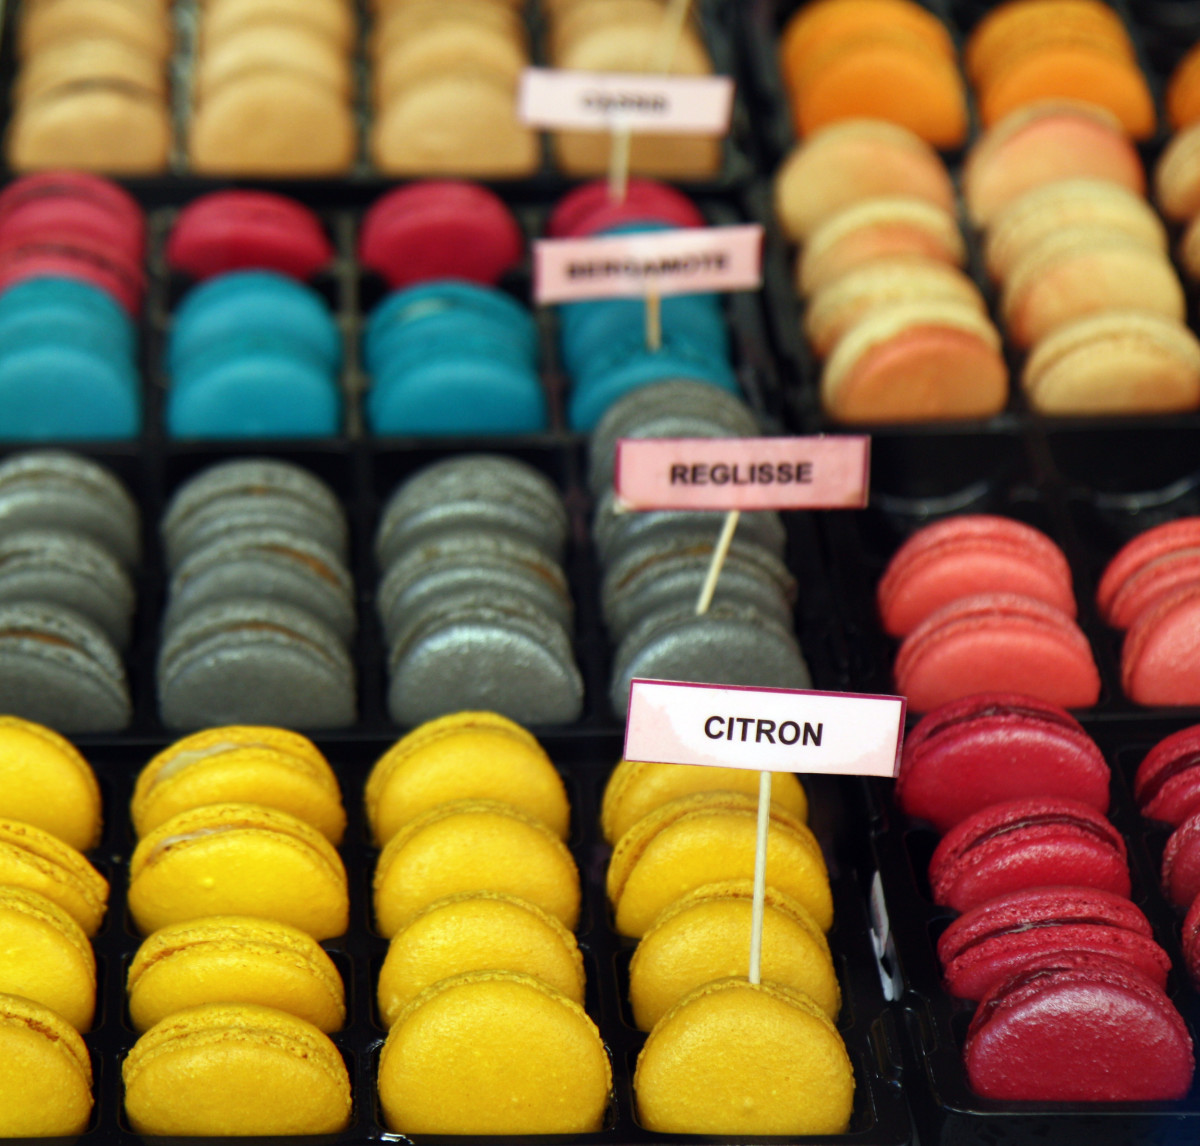 If you serve or gift multiple flavors, it can be helpful to label them so that people know what they are getting.